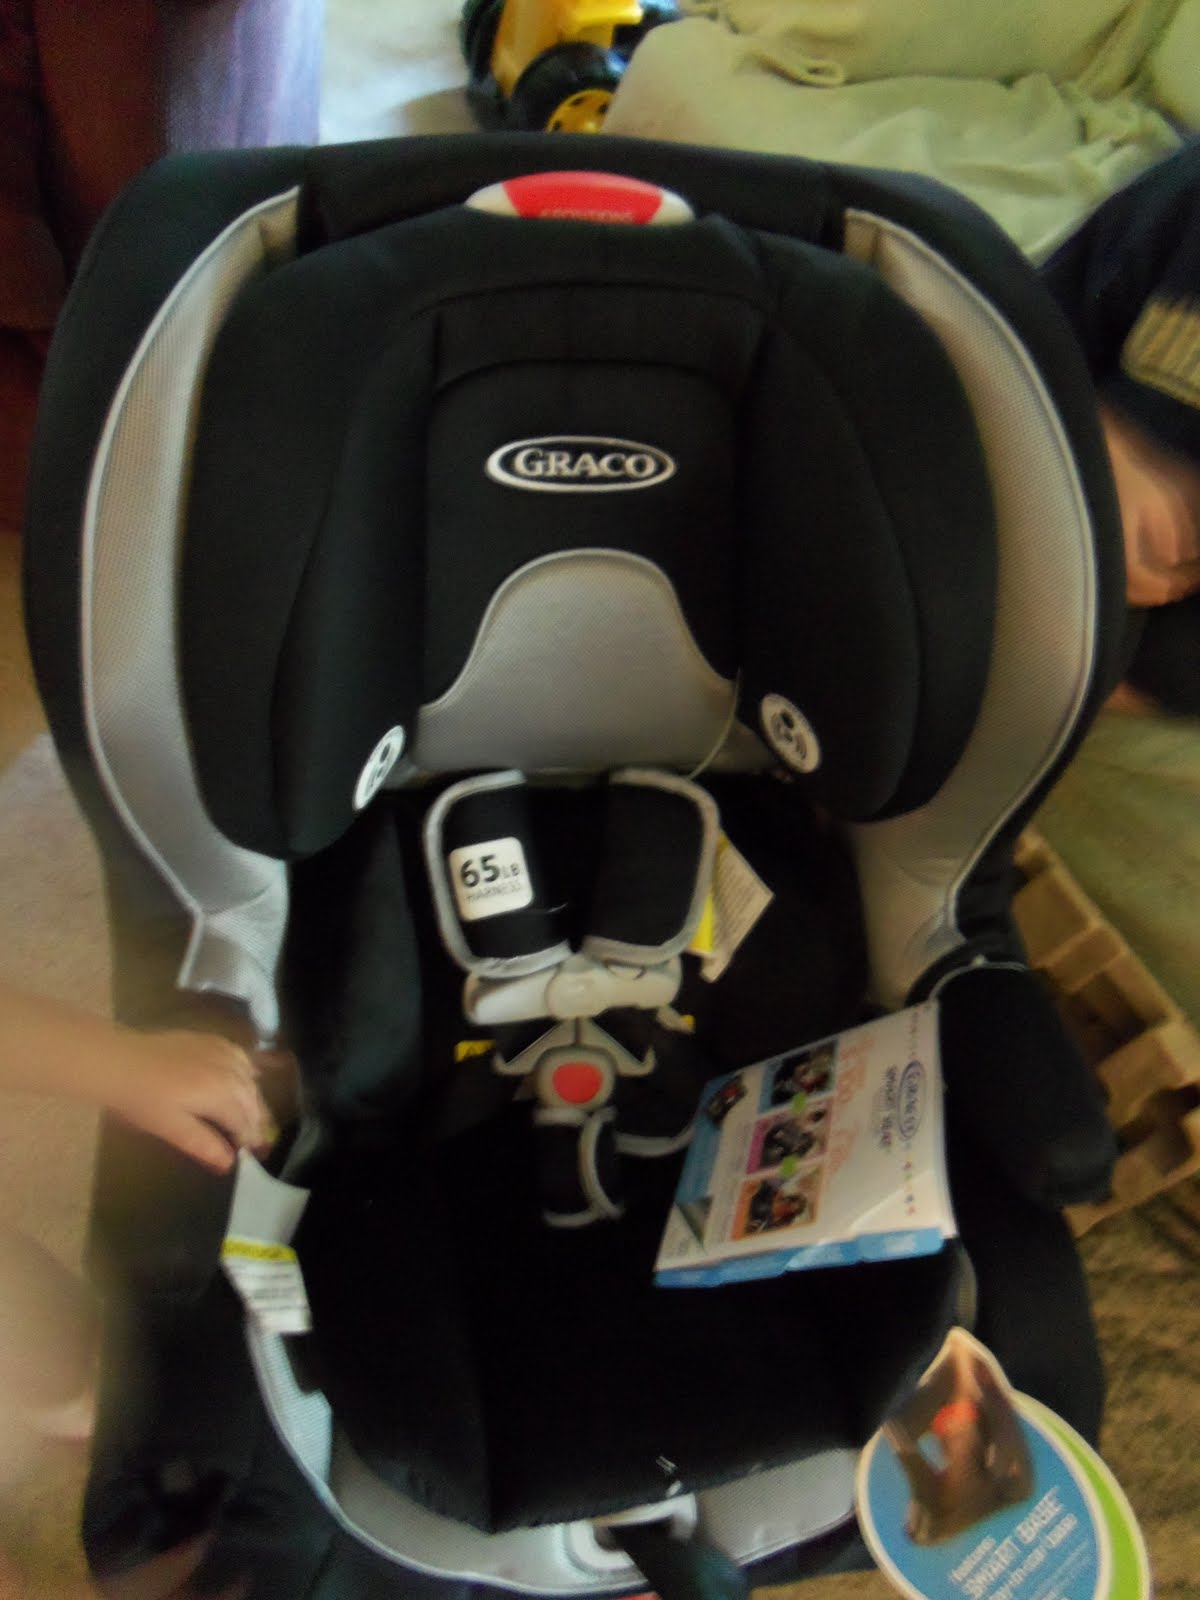 We Try The Graco SmartSeat All-in-One Convertible Car Seat